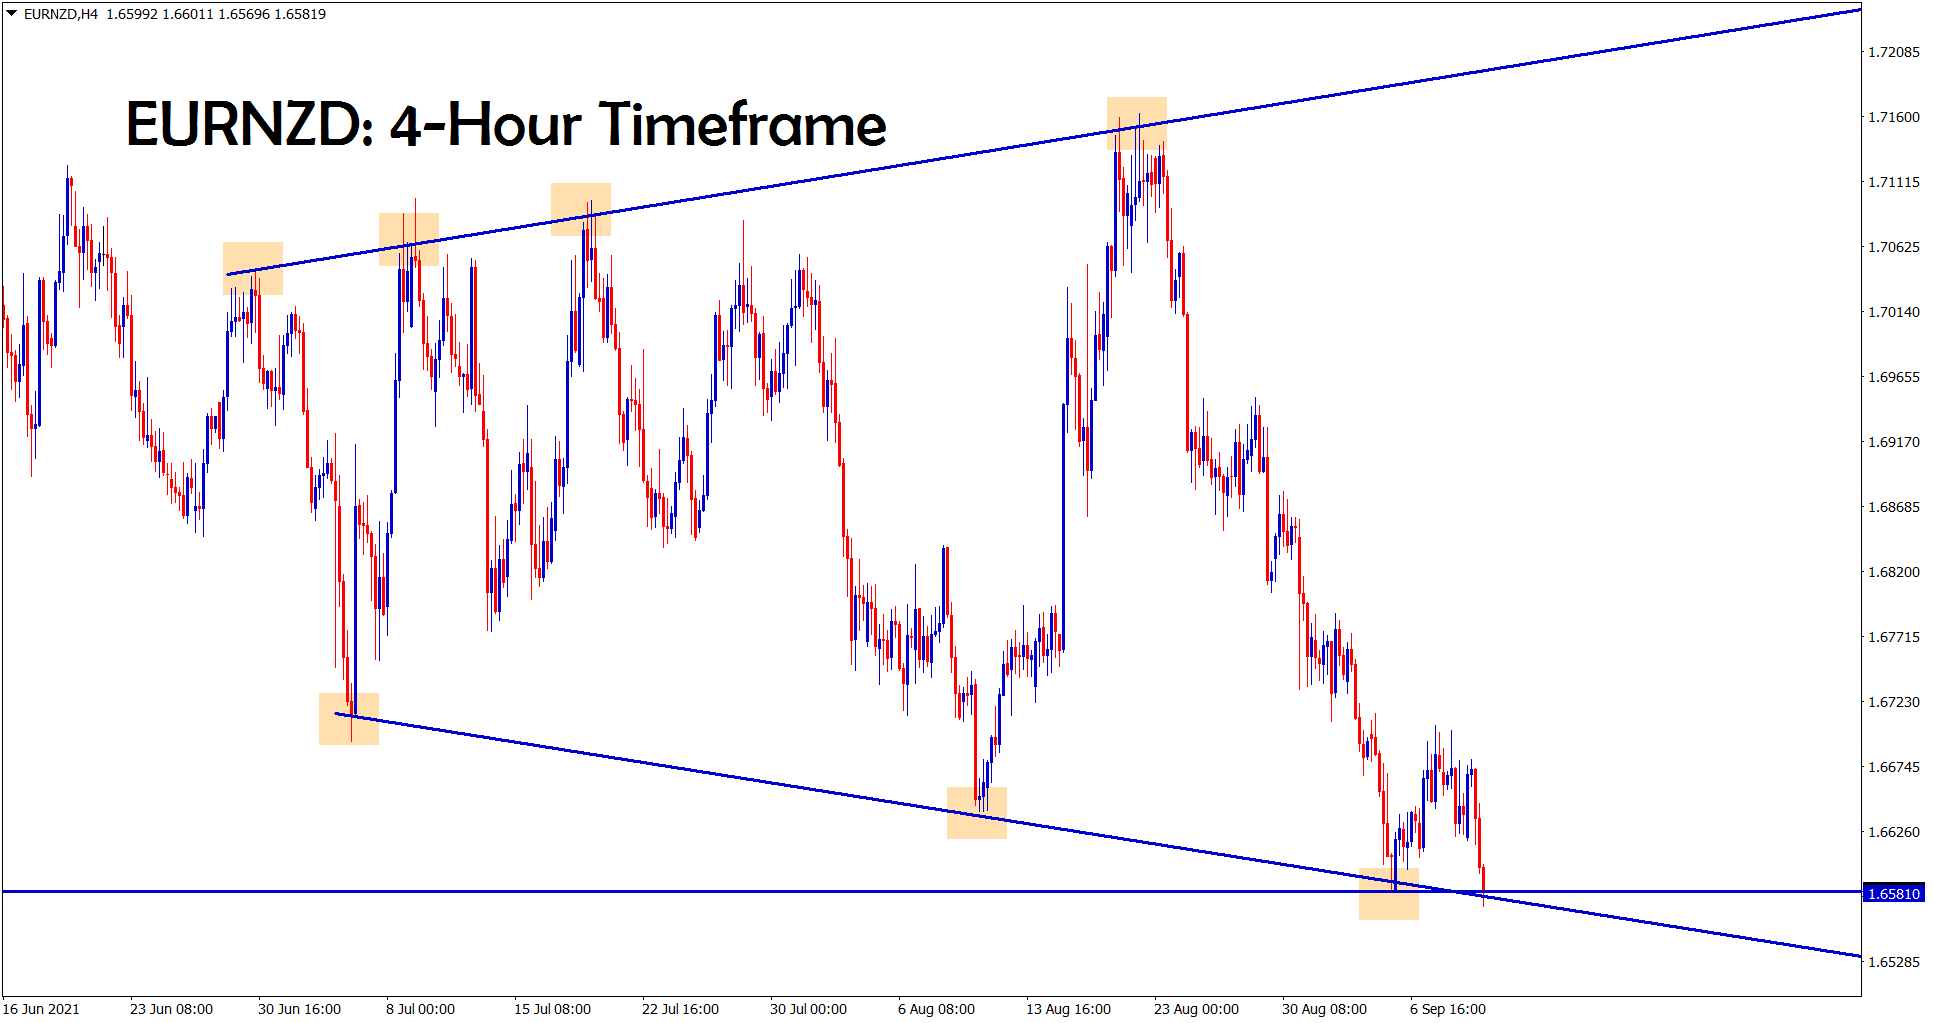 Expanding Triangle pattern has formed in the EURNZD 4 hour Timeframe chart